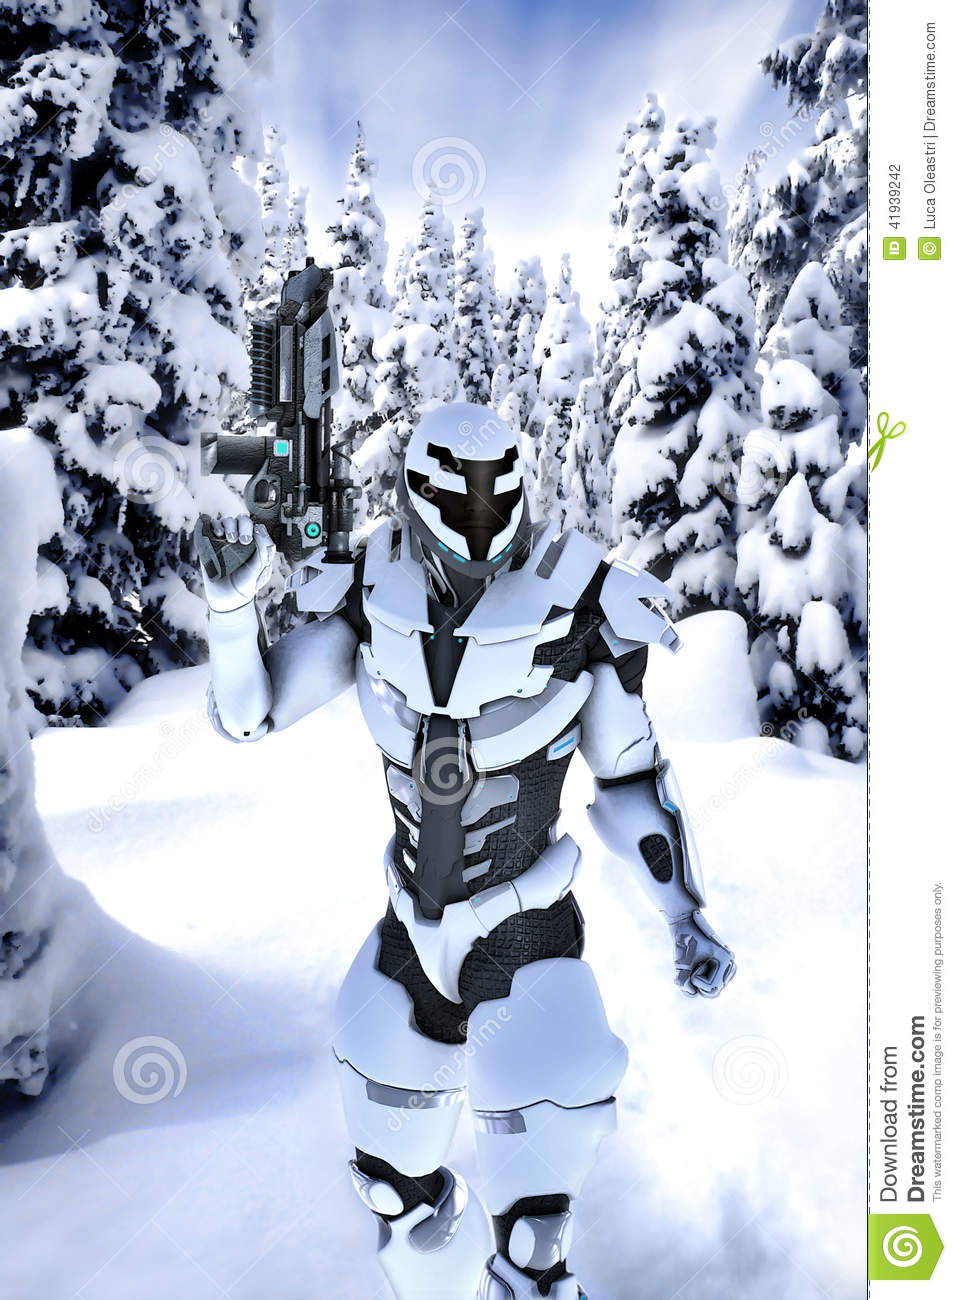 Futuristic Soldier Girl Wallpaper Futuristic Soldier In A Wood With Snow Stock Illustration